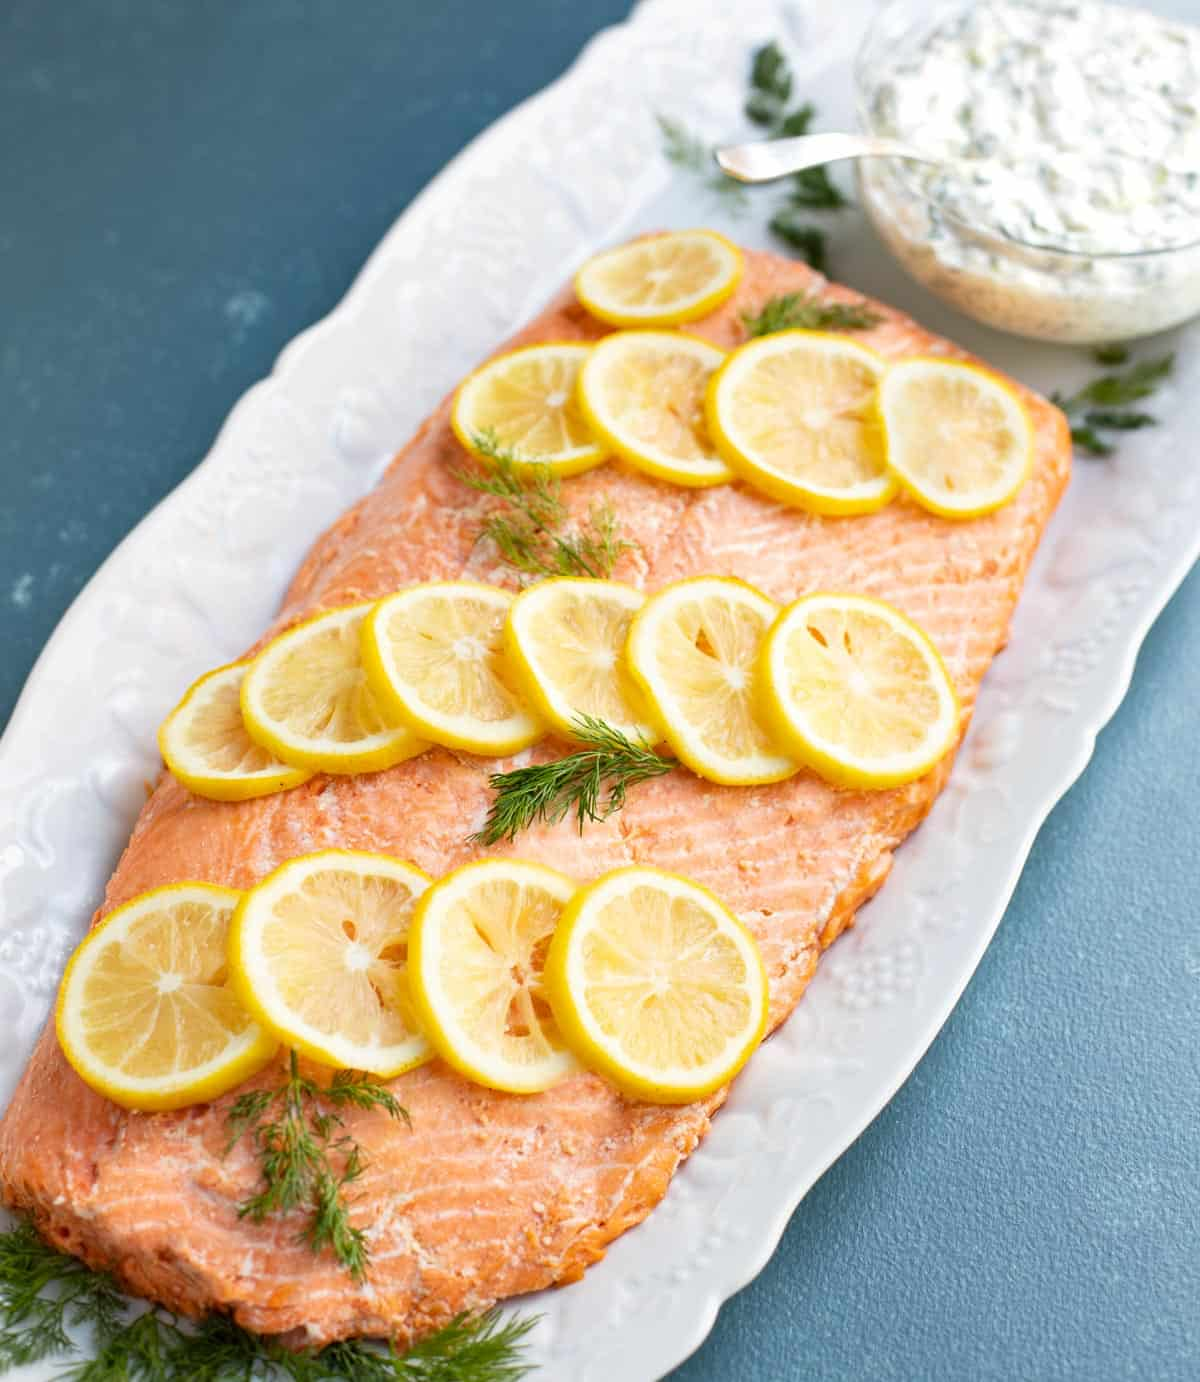 Oven poached salmon garnished with lemon slices and dill, with a side of cucumber dill sauce